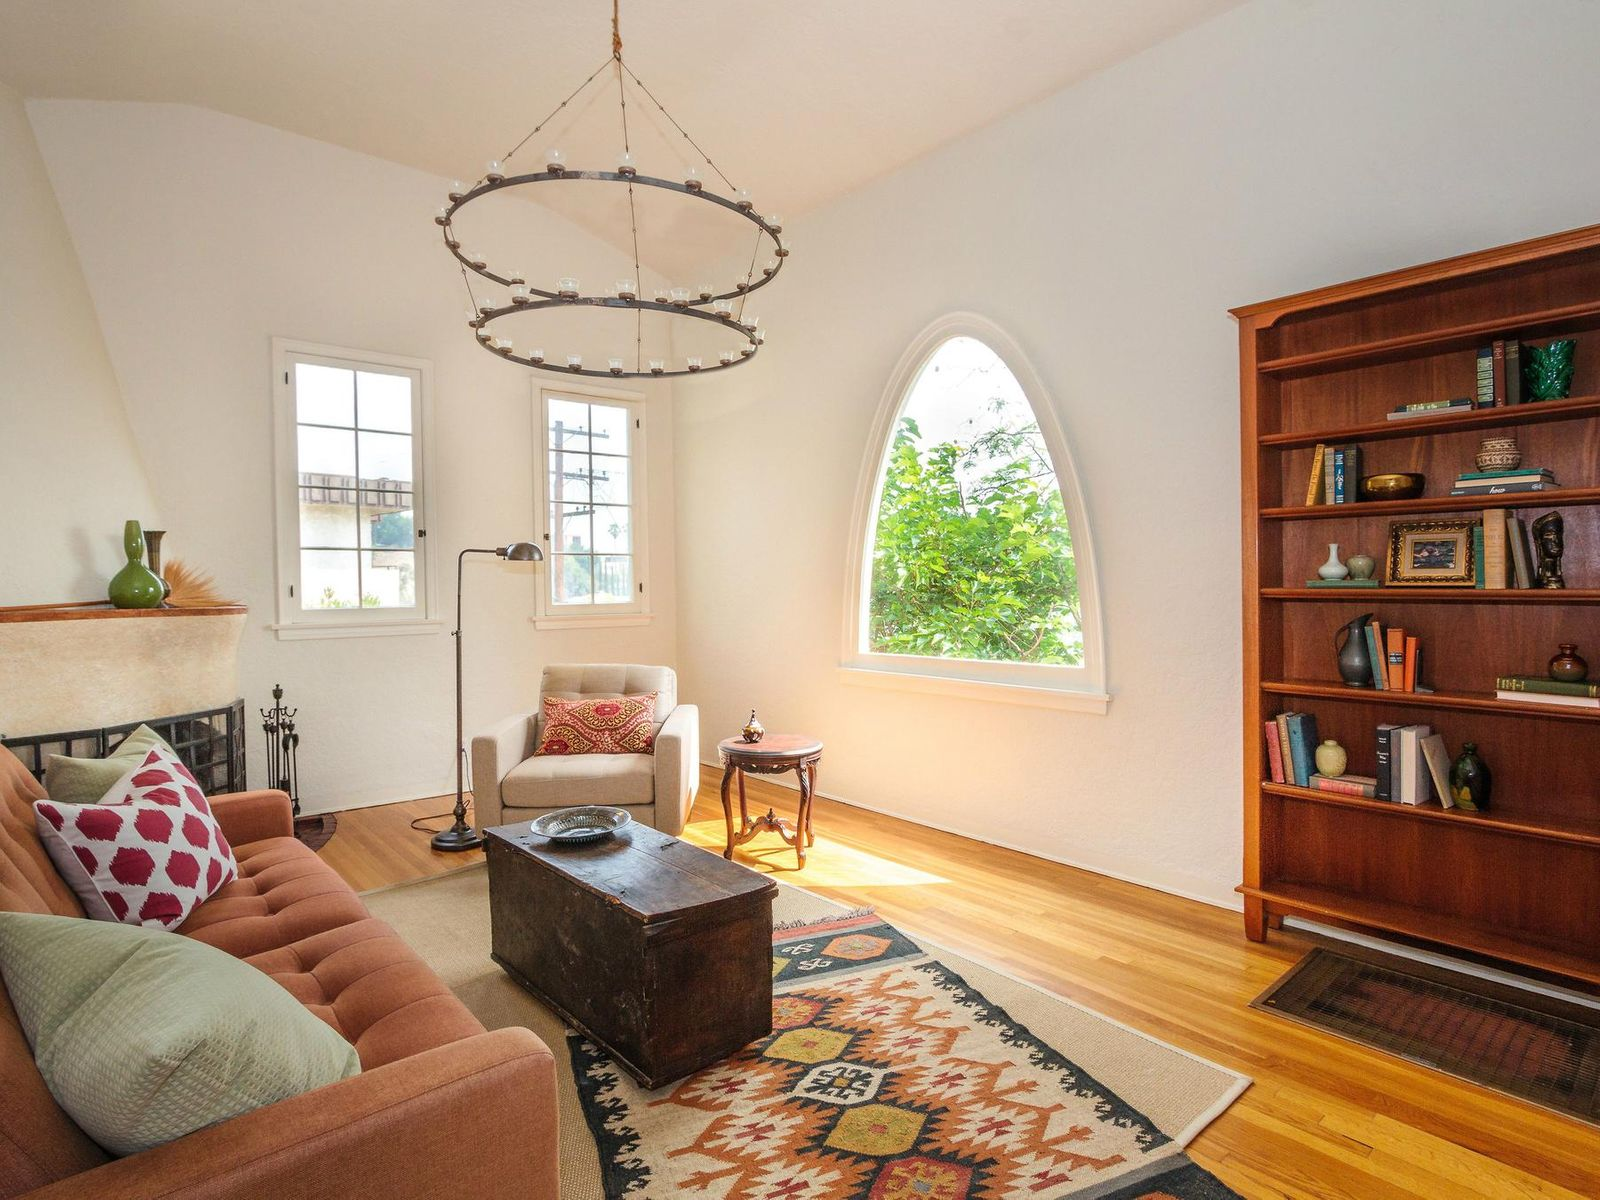 Character Los Feliz/Franklin Hills Home, Los Angeles CA Single Family Home - Los Angeles Real Estate